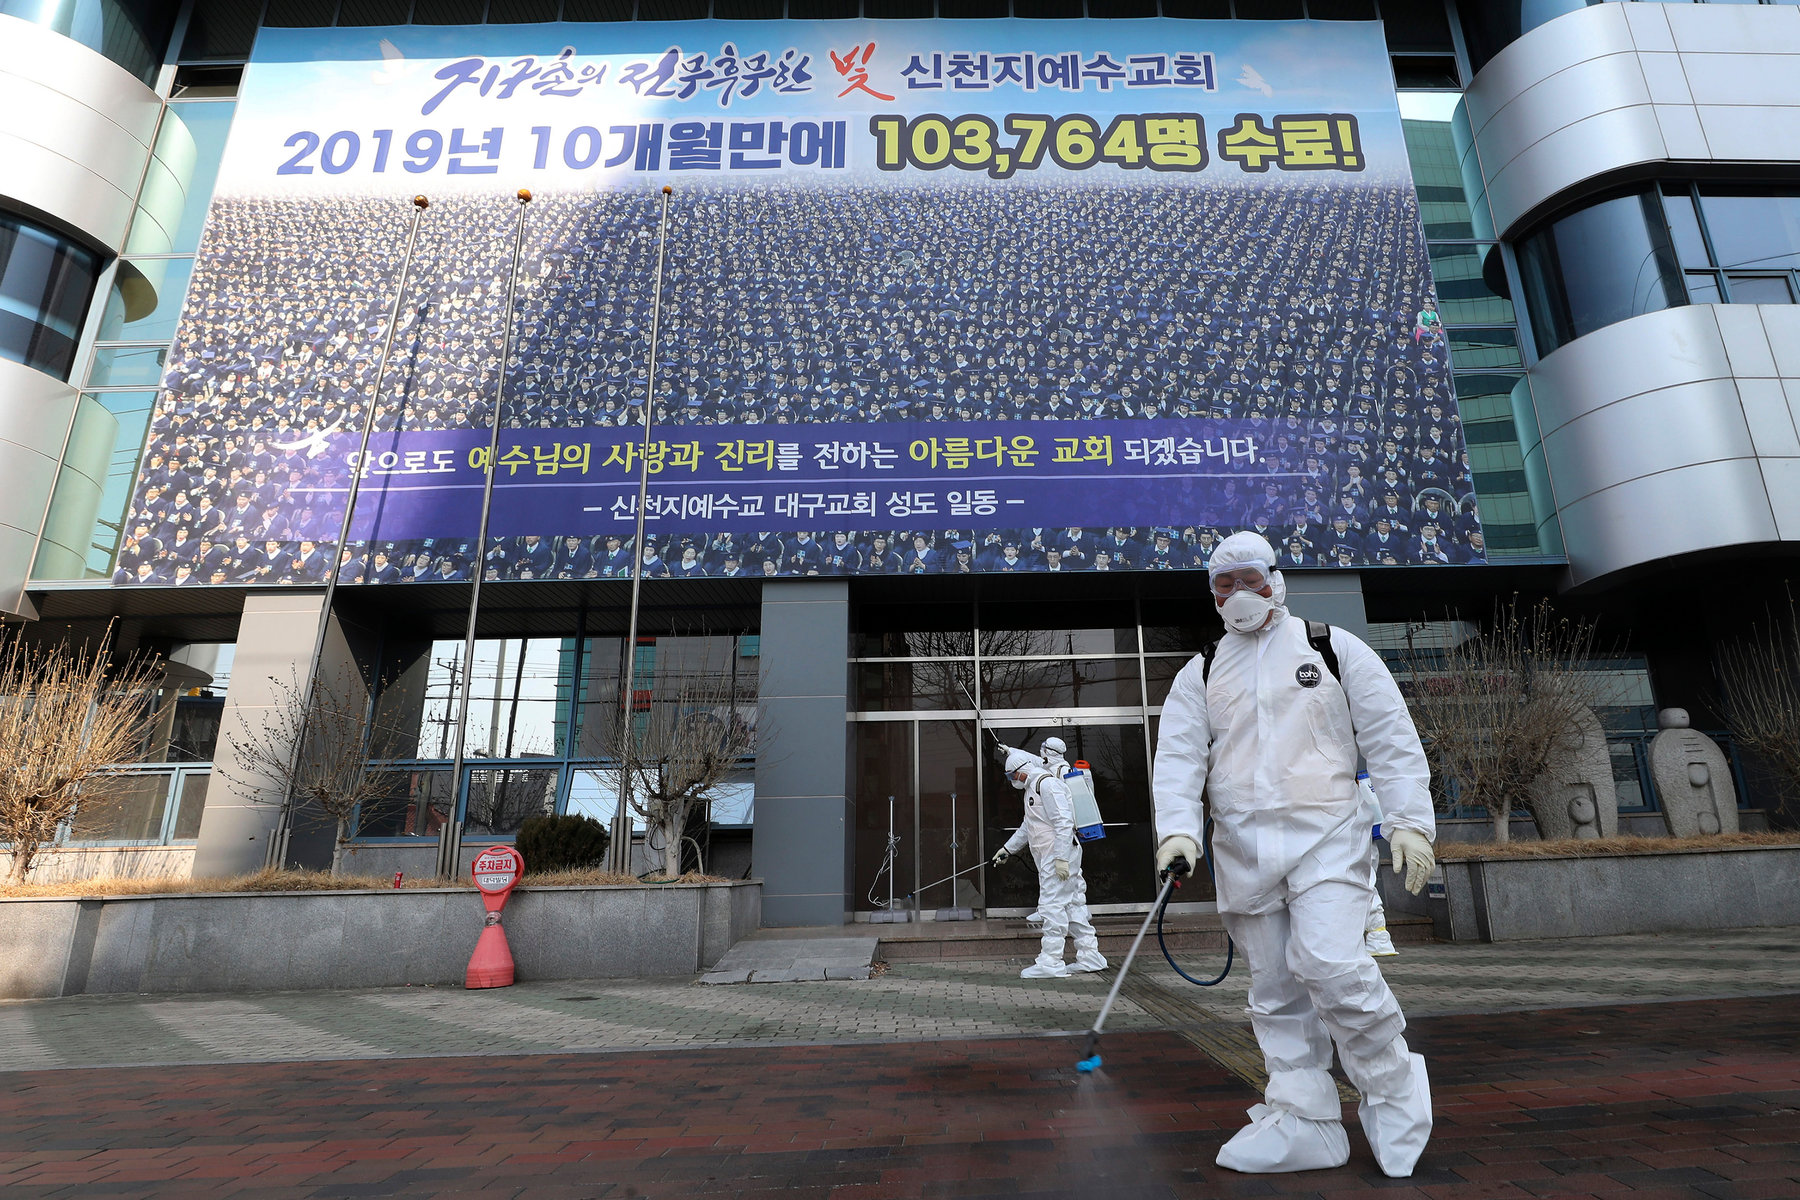 Shadowy Church Is at Center of Coronavirus Outbreak in South Korea ...